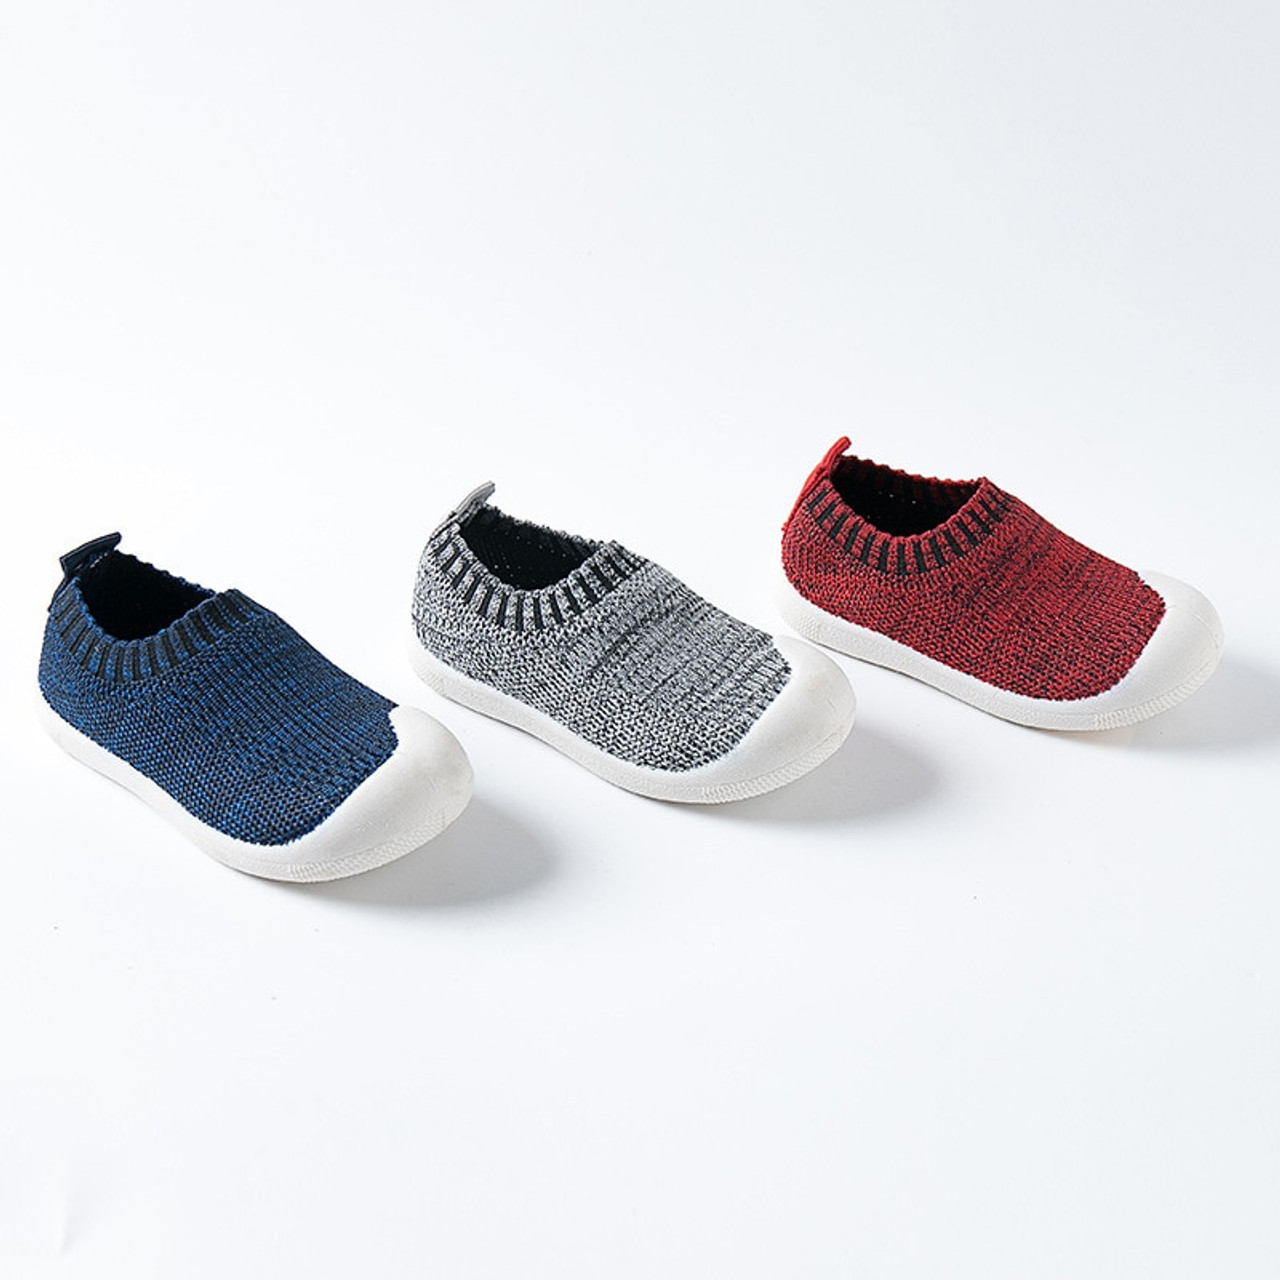 Toddler Kids Baby Girls Boys Sports Shoes Soft Bottom Sneakers Non-Slip Shoes